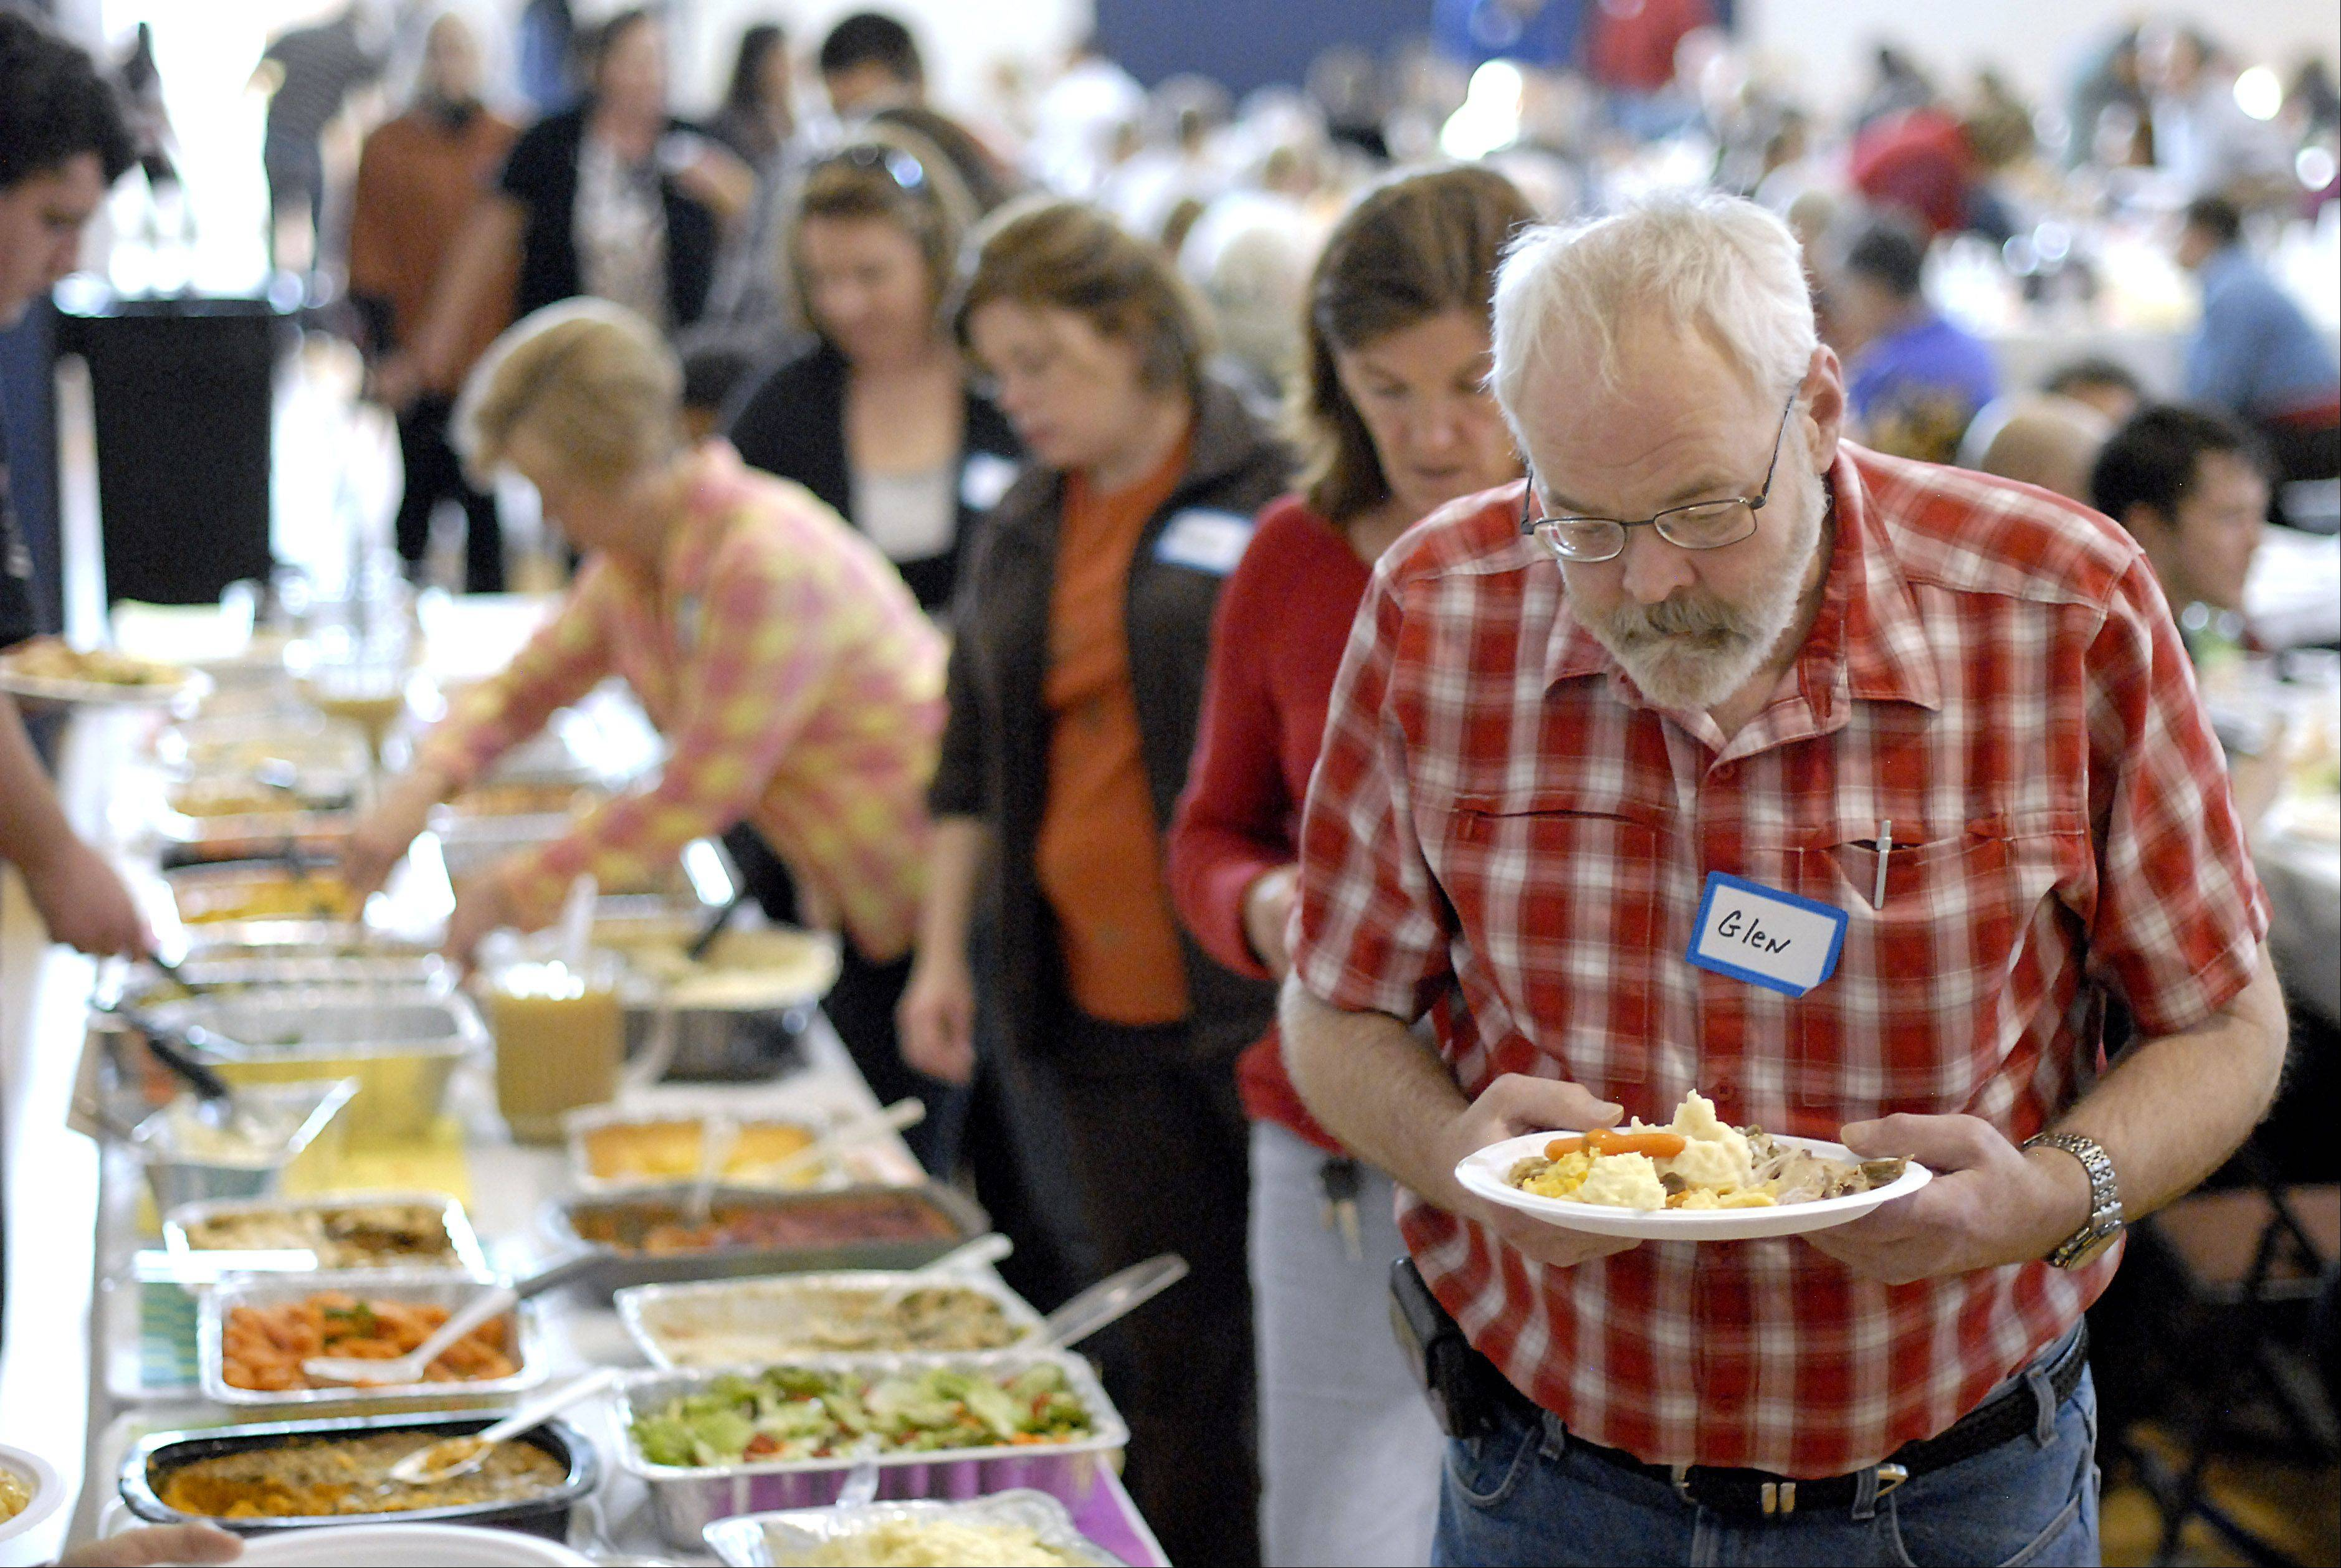 Glen Ostgaard of Geneva fills up a plate at Lazarus House's annual Thanksgiving Day dinner at the Salvation Army in St. Charles. Ostgaard has been coming to the dinner for the past seven or eight years.